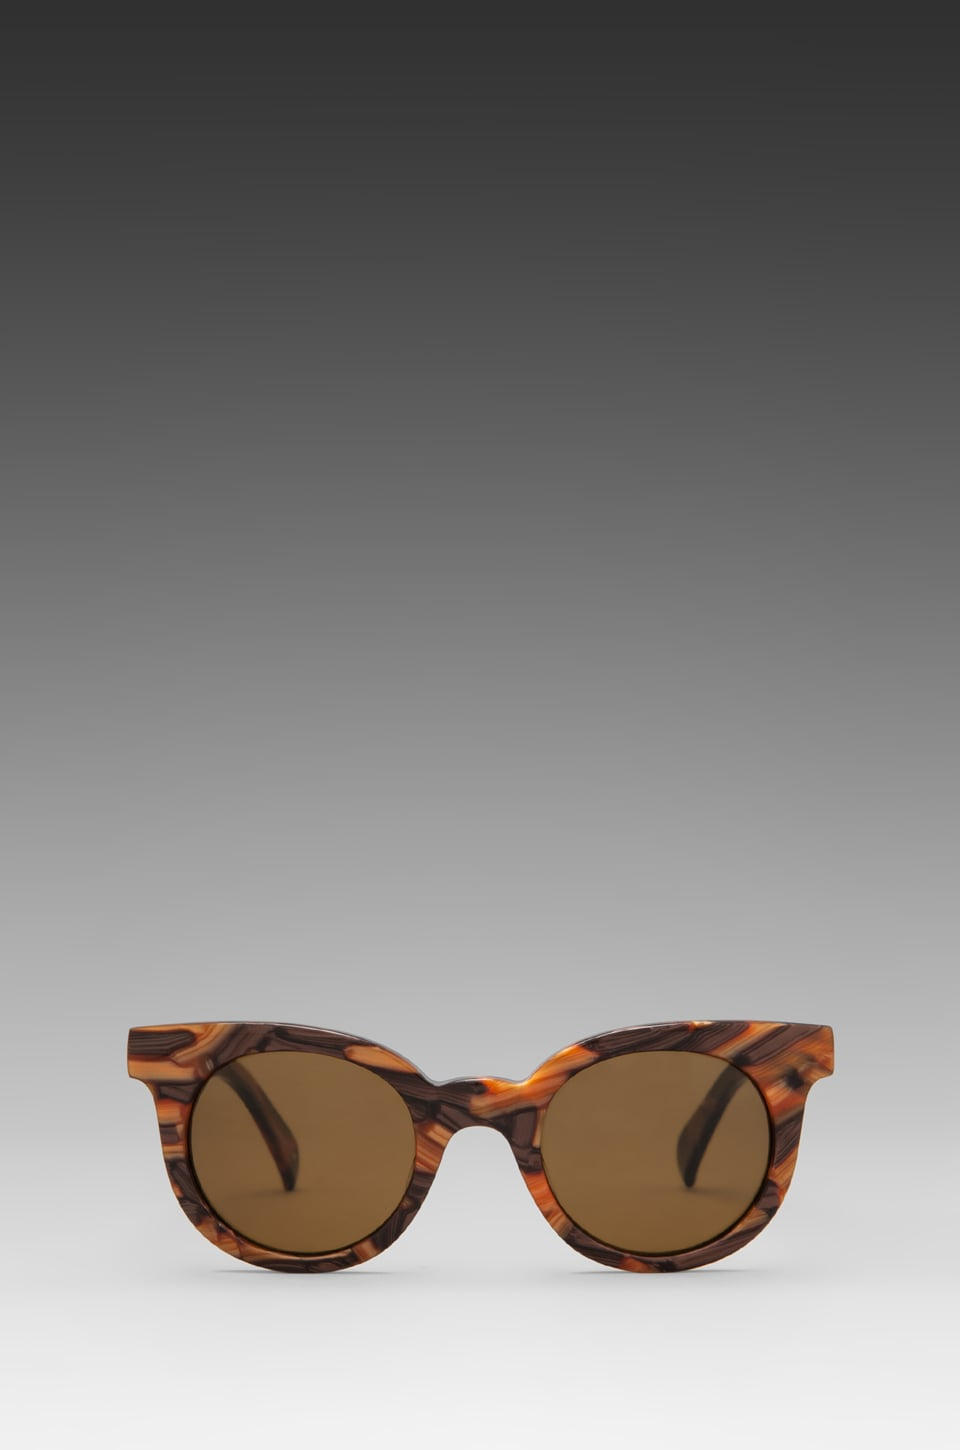 RAEN optics Arkin in Calico/Brown Polarized